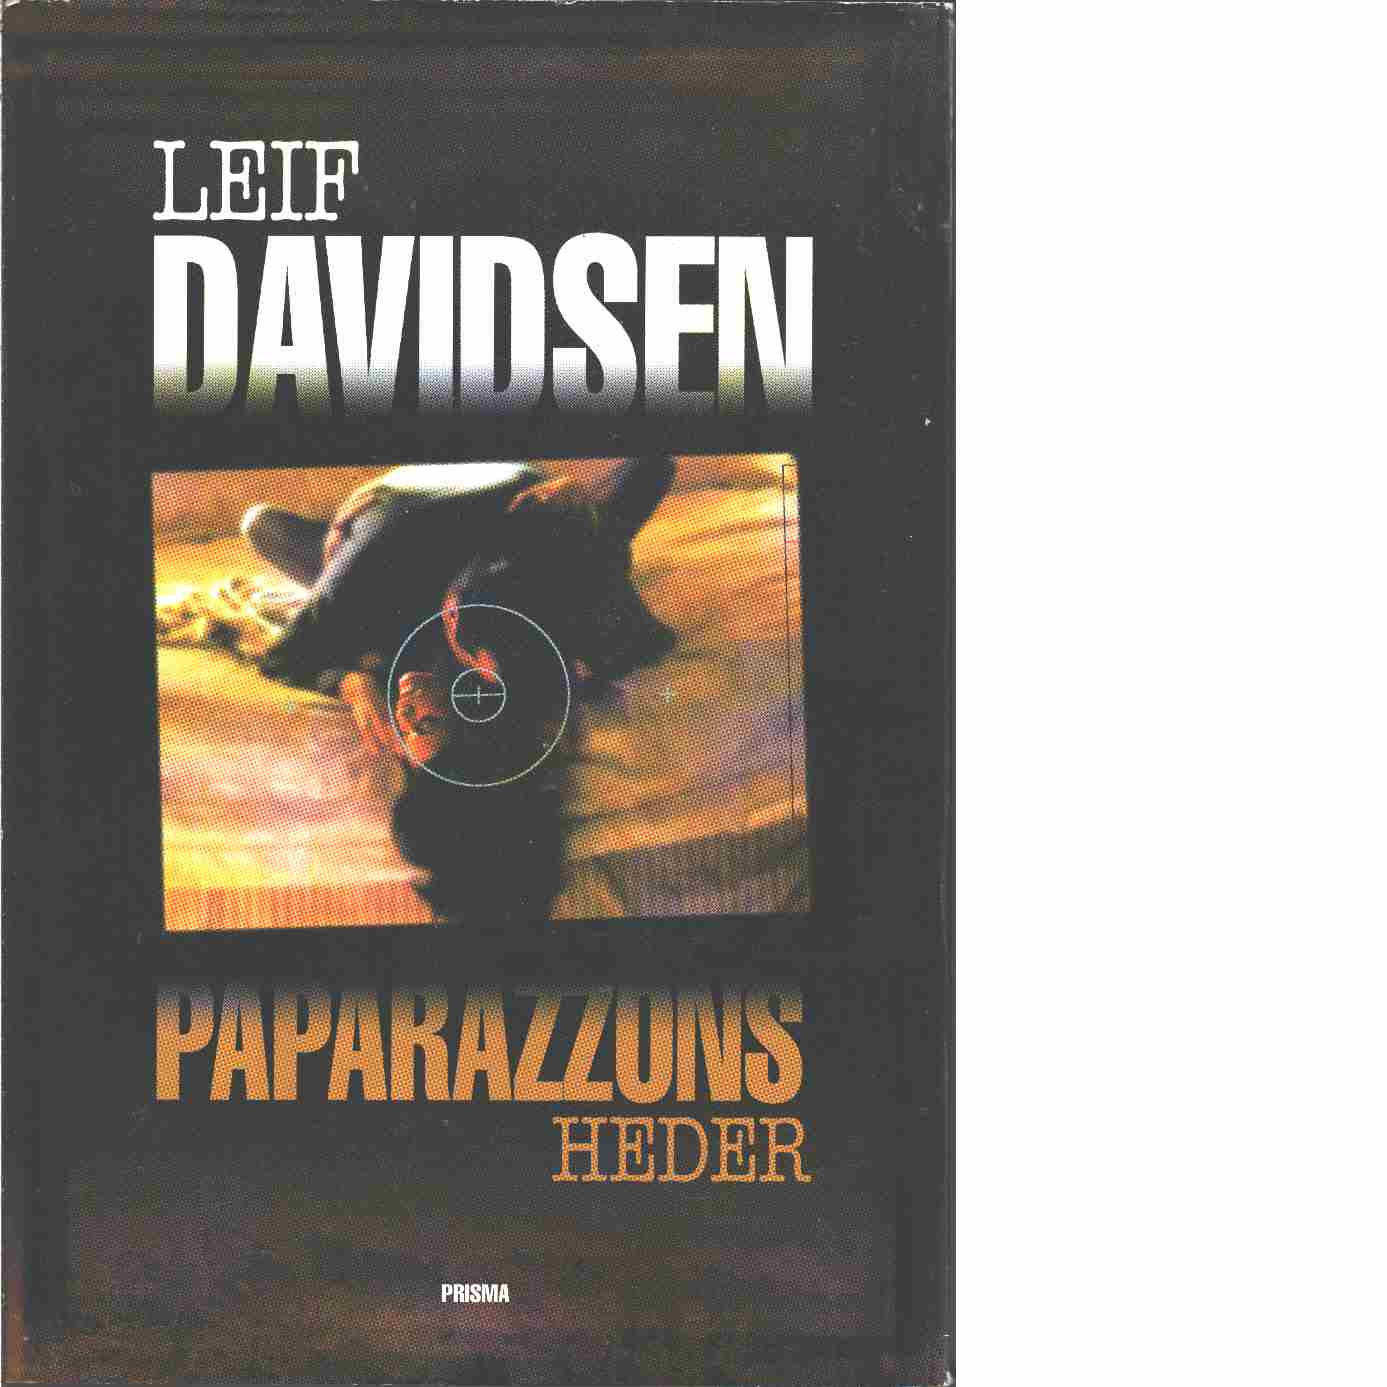 Paparazzons heder - Davidsen, Leif